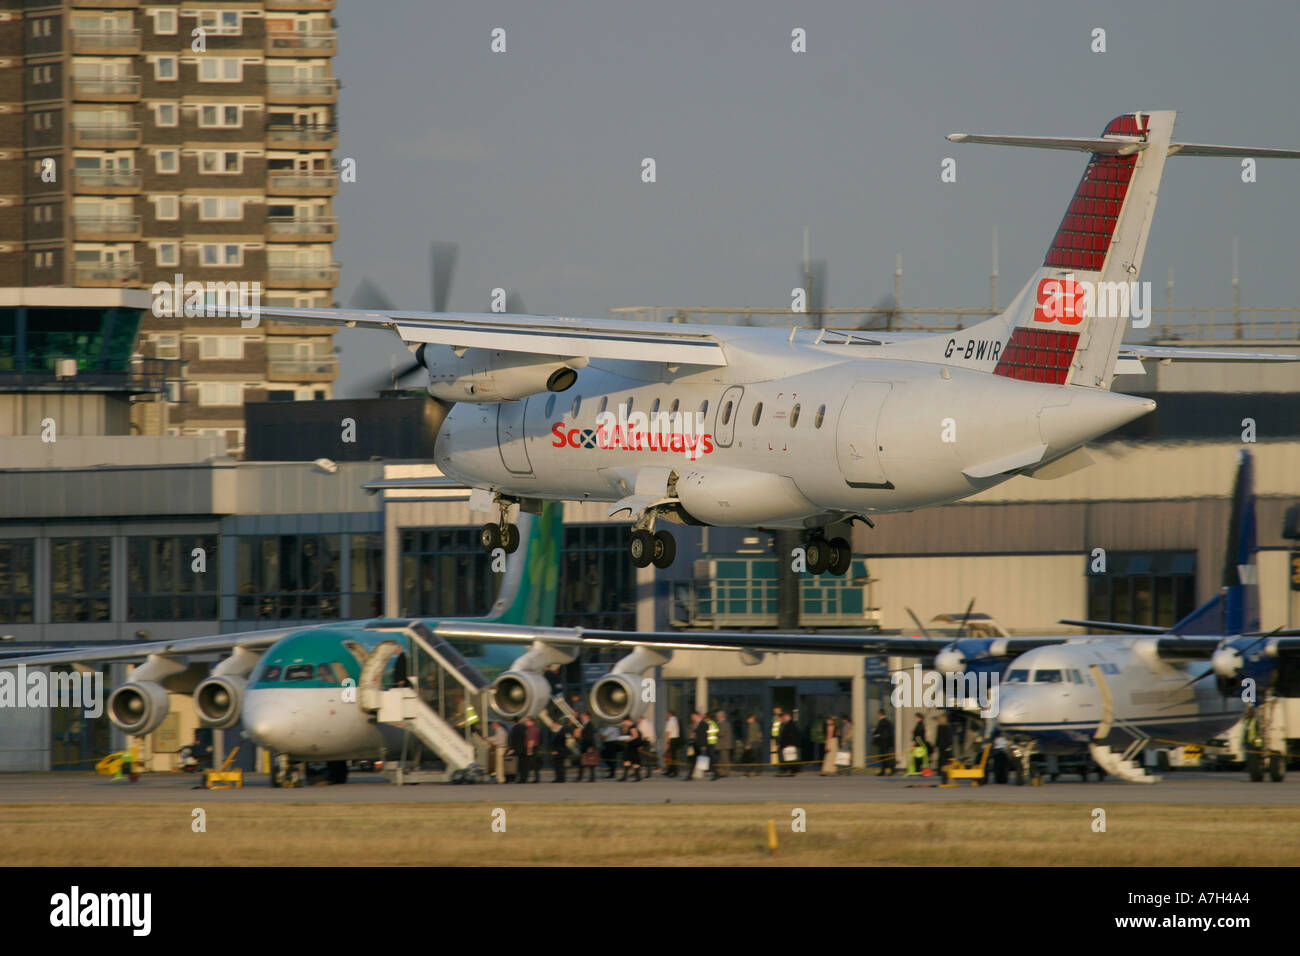 Scot Airways Dornier Do 328 110 landing at London City Airport and passengers boarding in the background 2004 - Stock Image